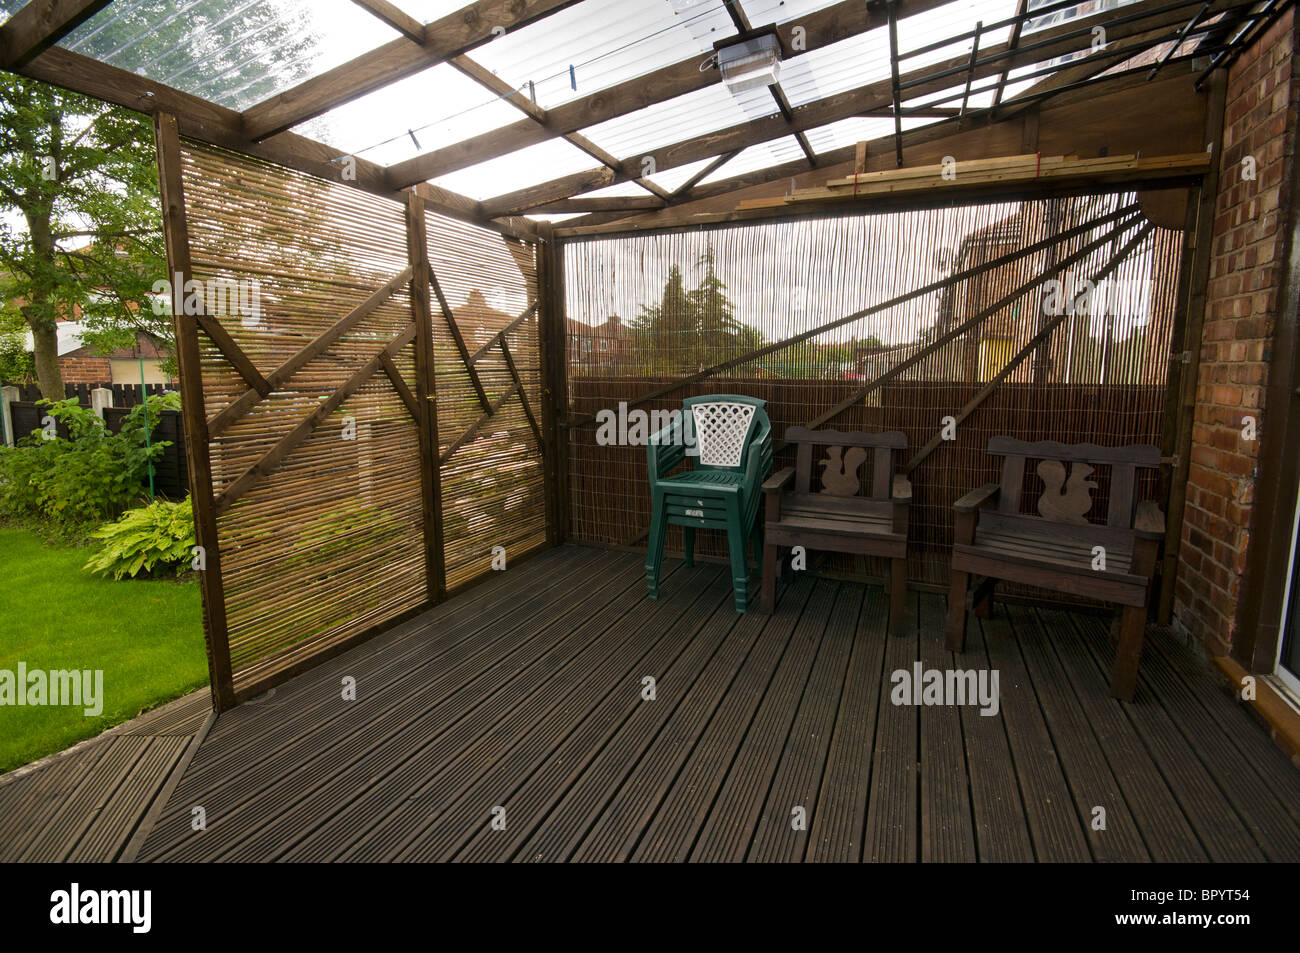 Elegant Home Built Patio Decking With Corrugated Plastic Roofing And Movable  Screening Panels In A Domestic Setting. Manchester, UK.